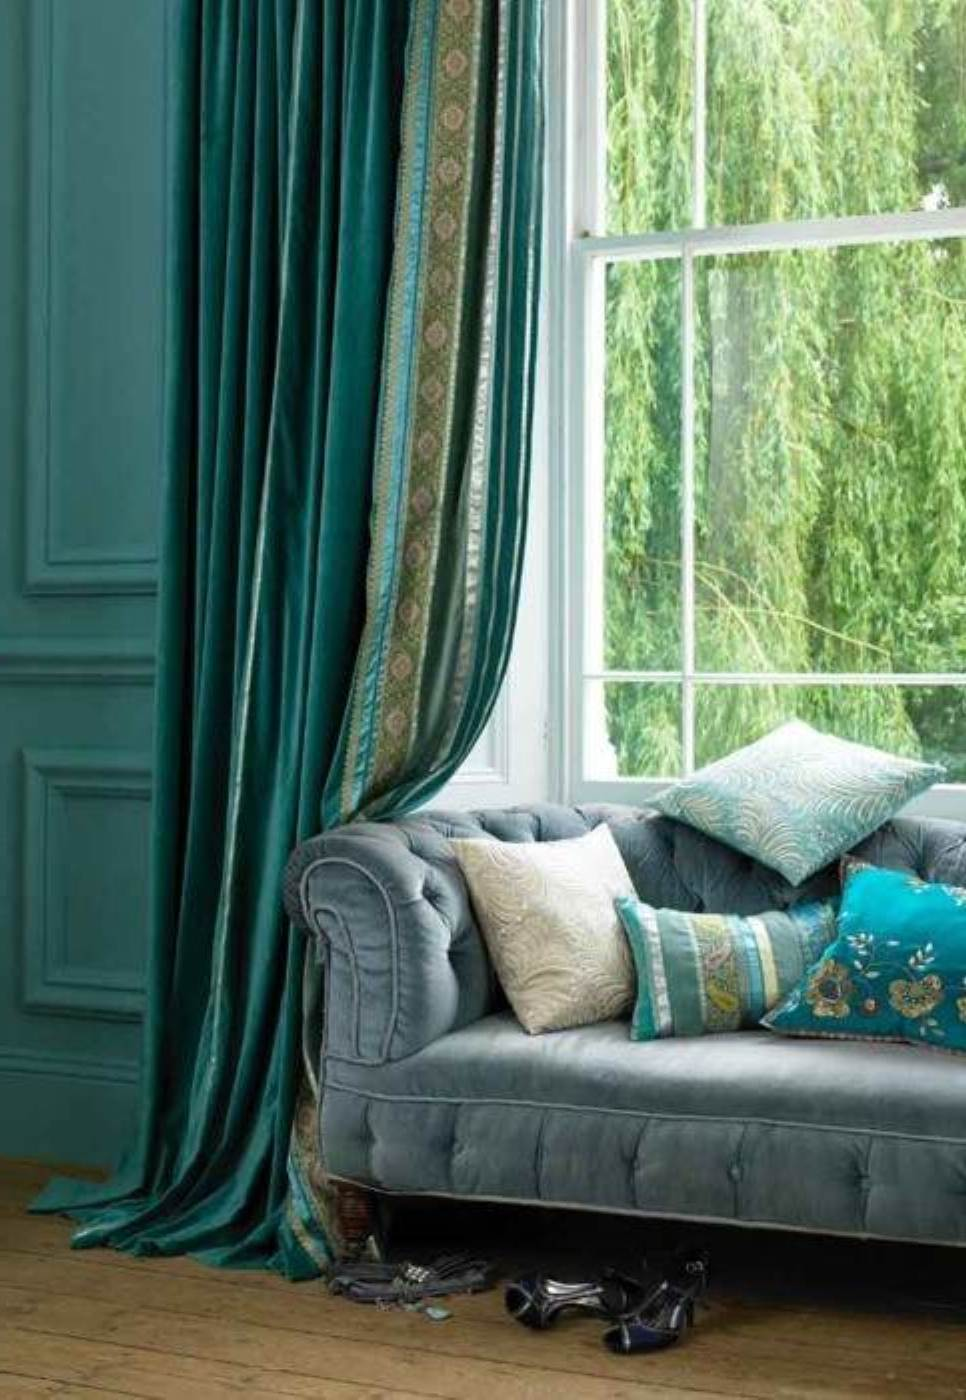 astounding-design-of-the-living-room-drapes-with-green-wall-added-with-blue-curtain-added-with-blue-sofa-ideas